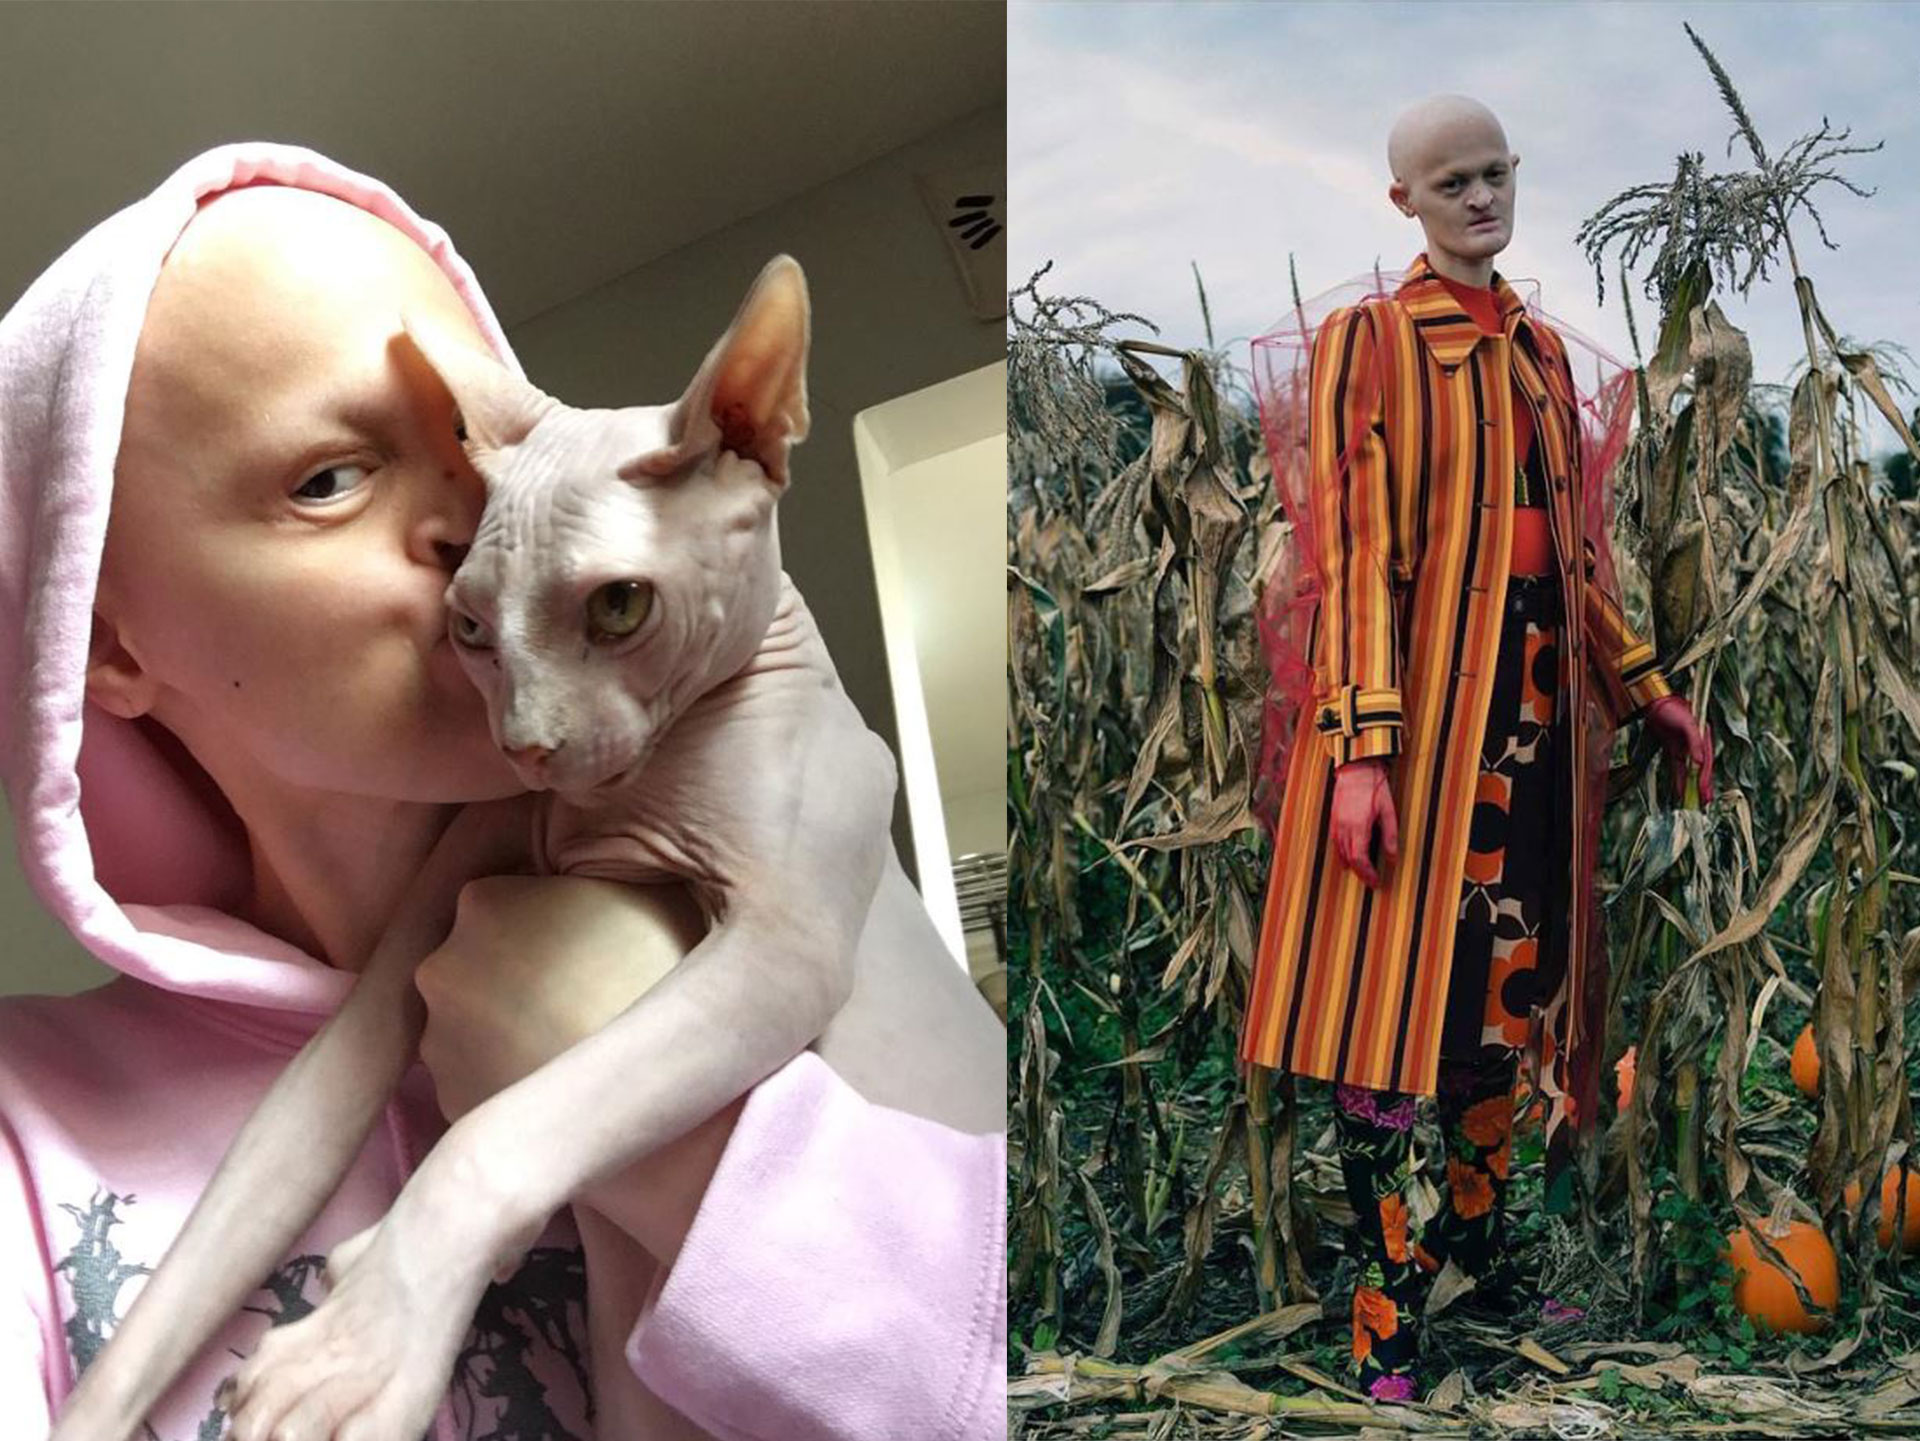 Model Melanie Gaydos Has a Rare Genetic Disorder—And Shes Taking Over the Fashion World